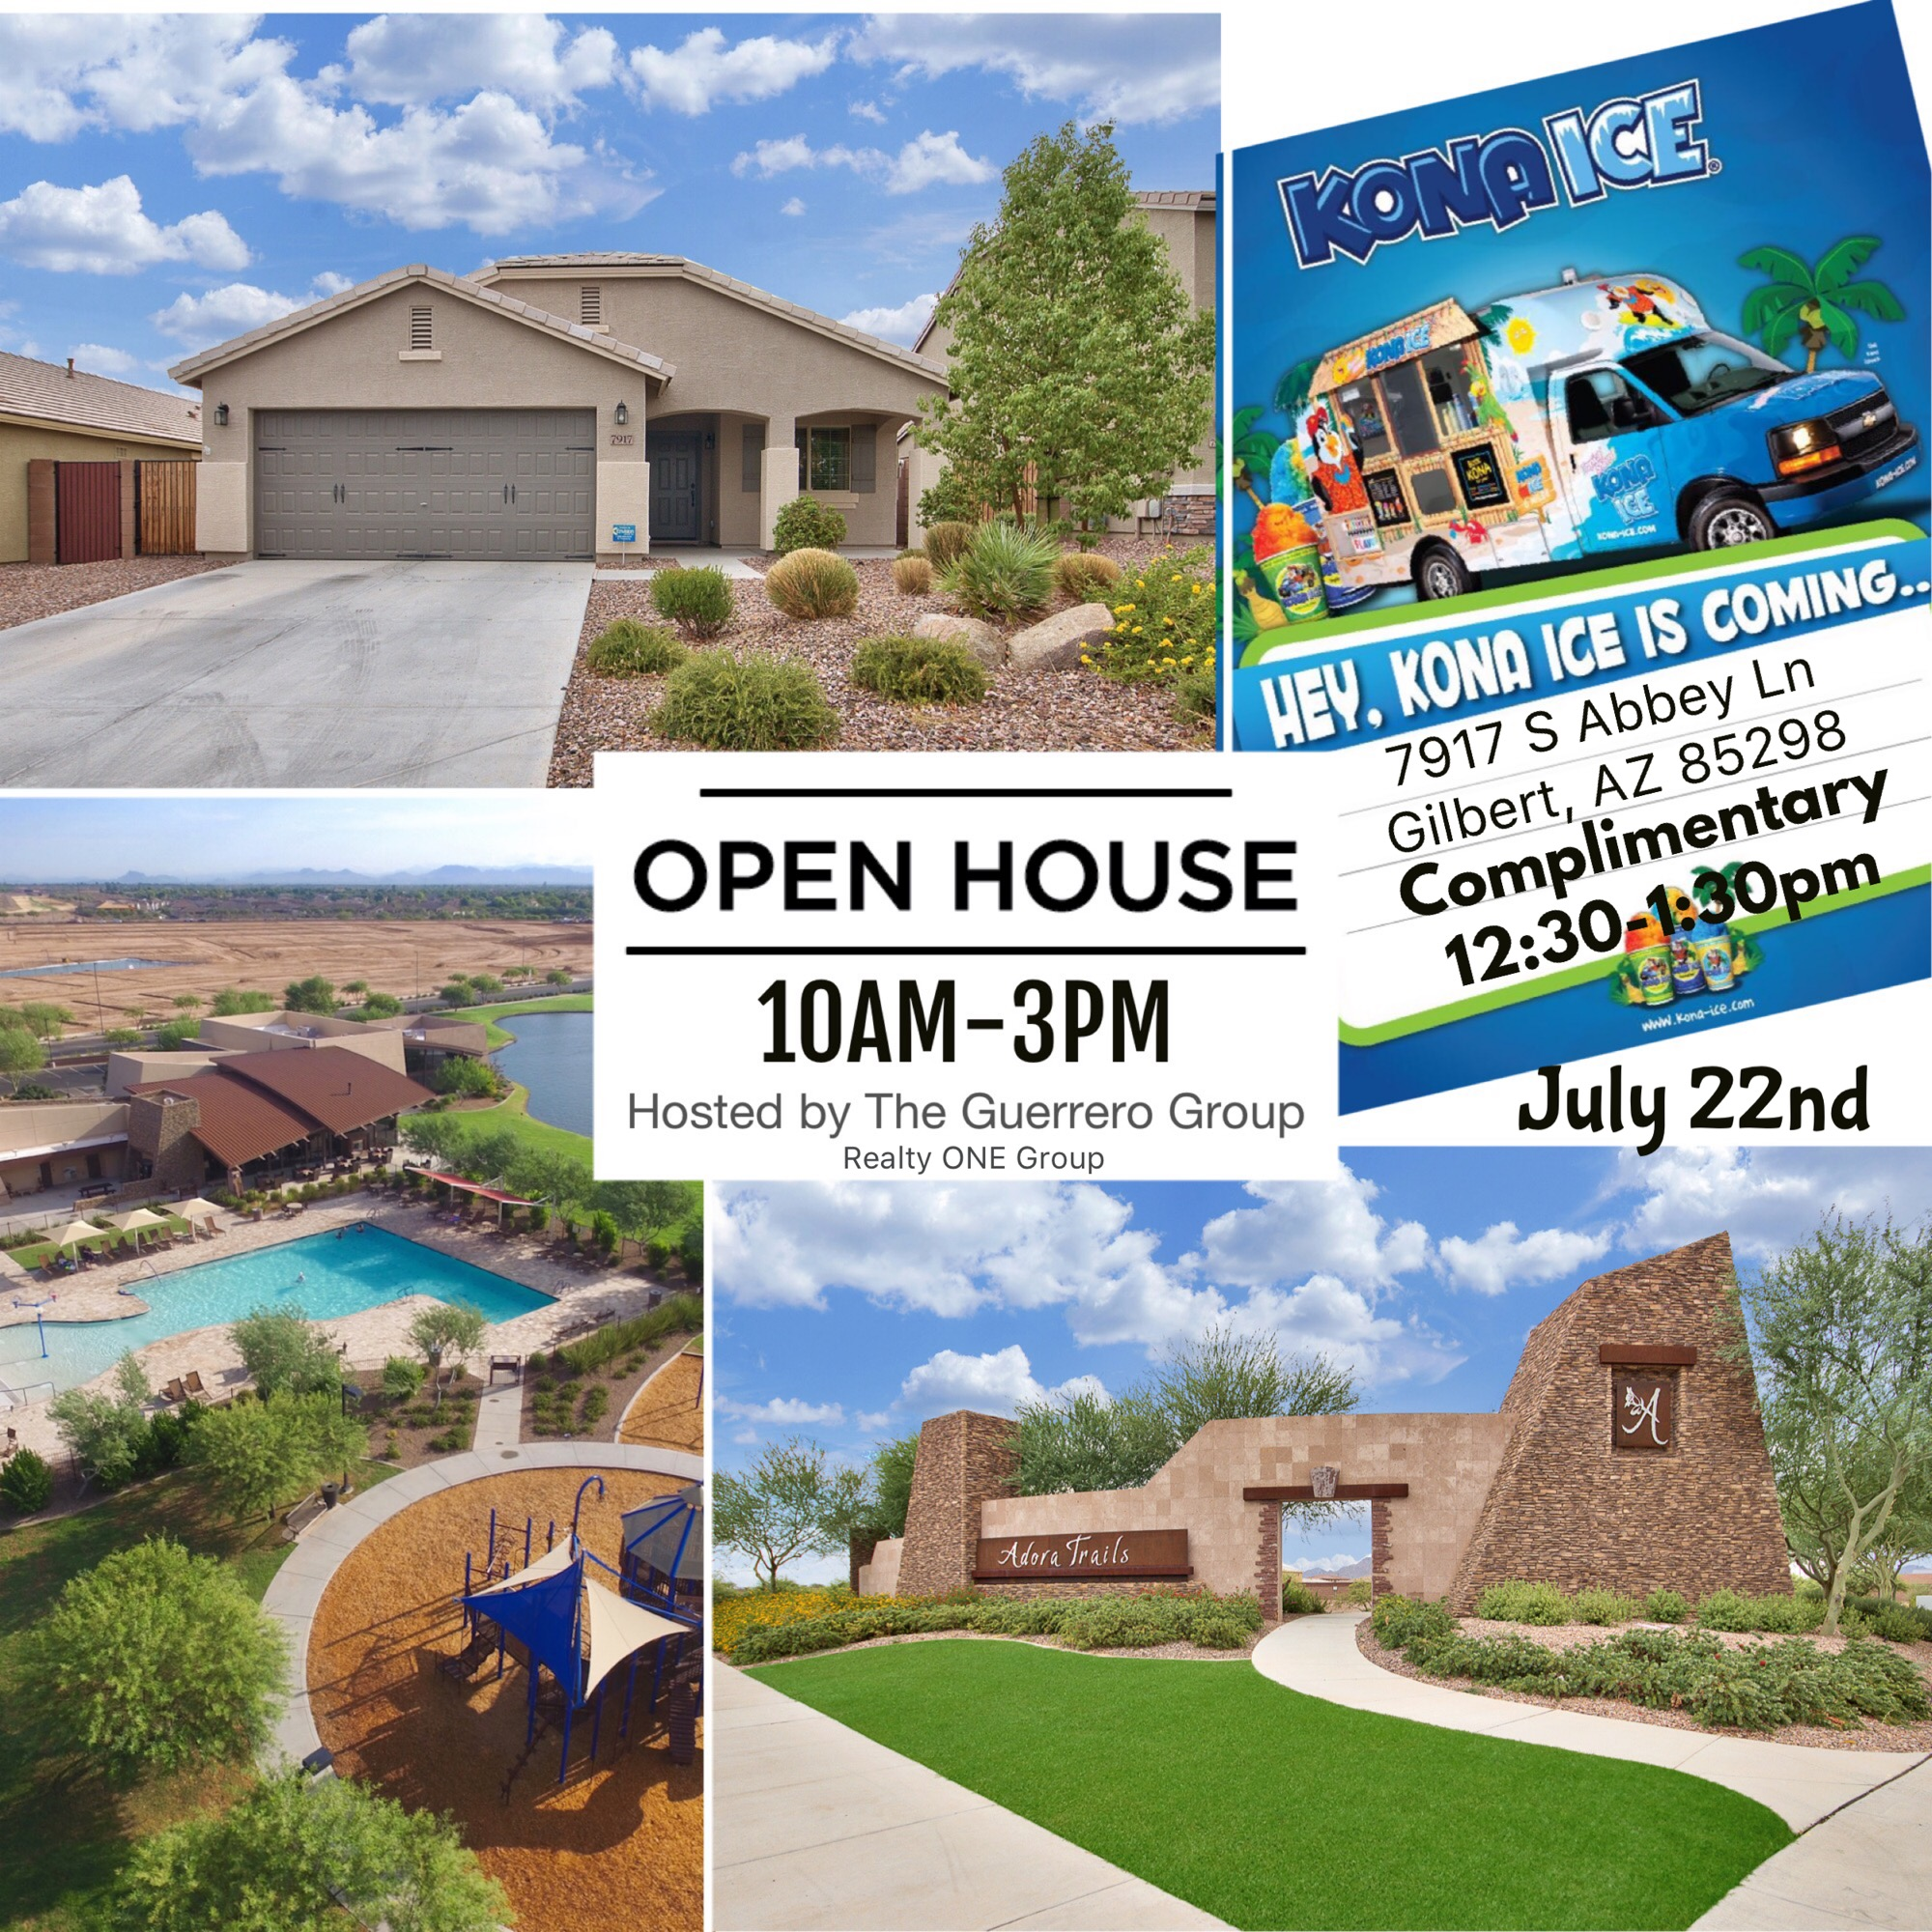 4 Bed 2 Bath Home For Sale In Adora Trails Gilbert Arizona Adora Trails Gilbert Arizona Homes For Sale In Gilbert Arizona The Guerrero Group